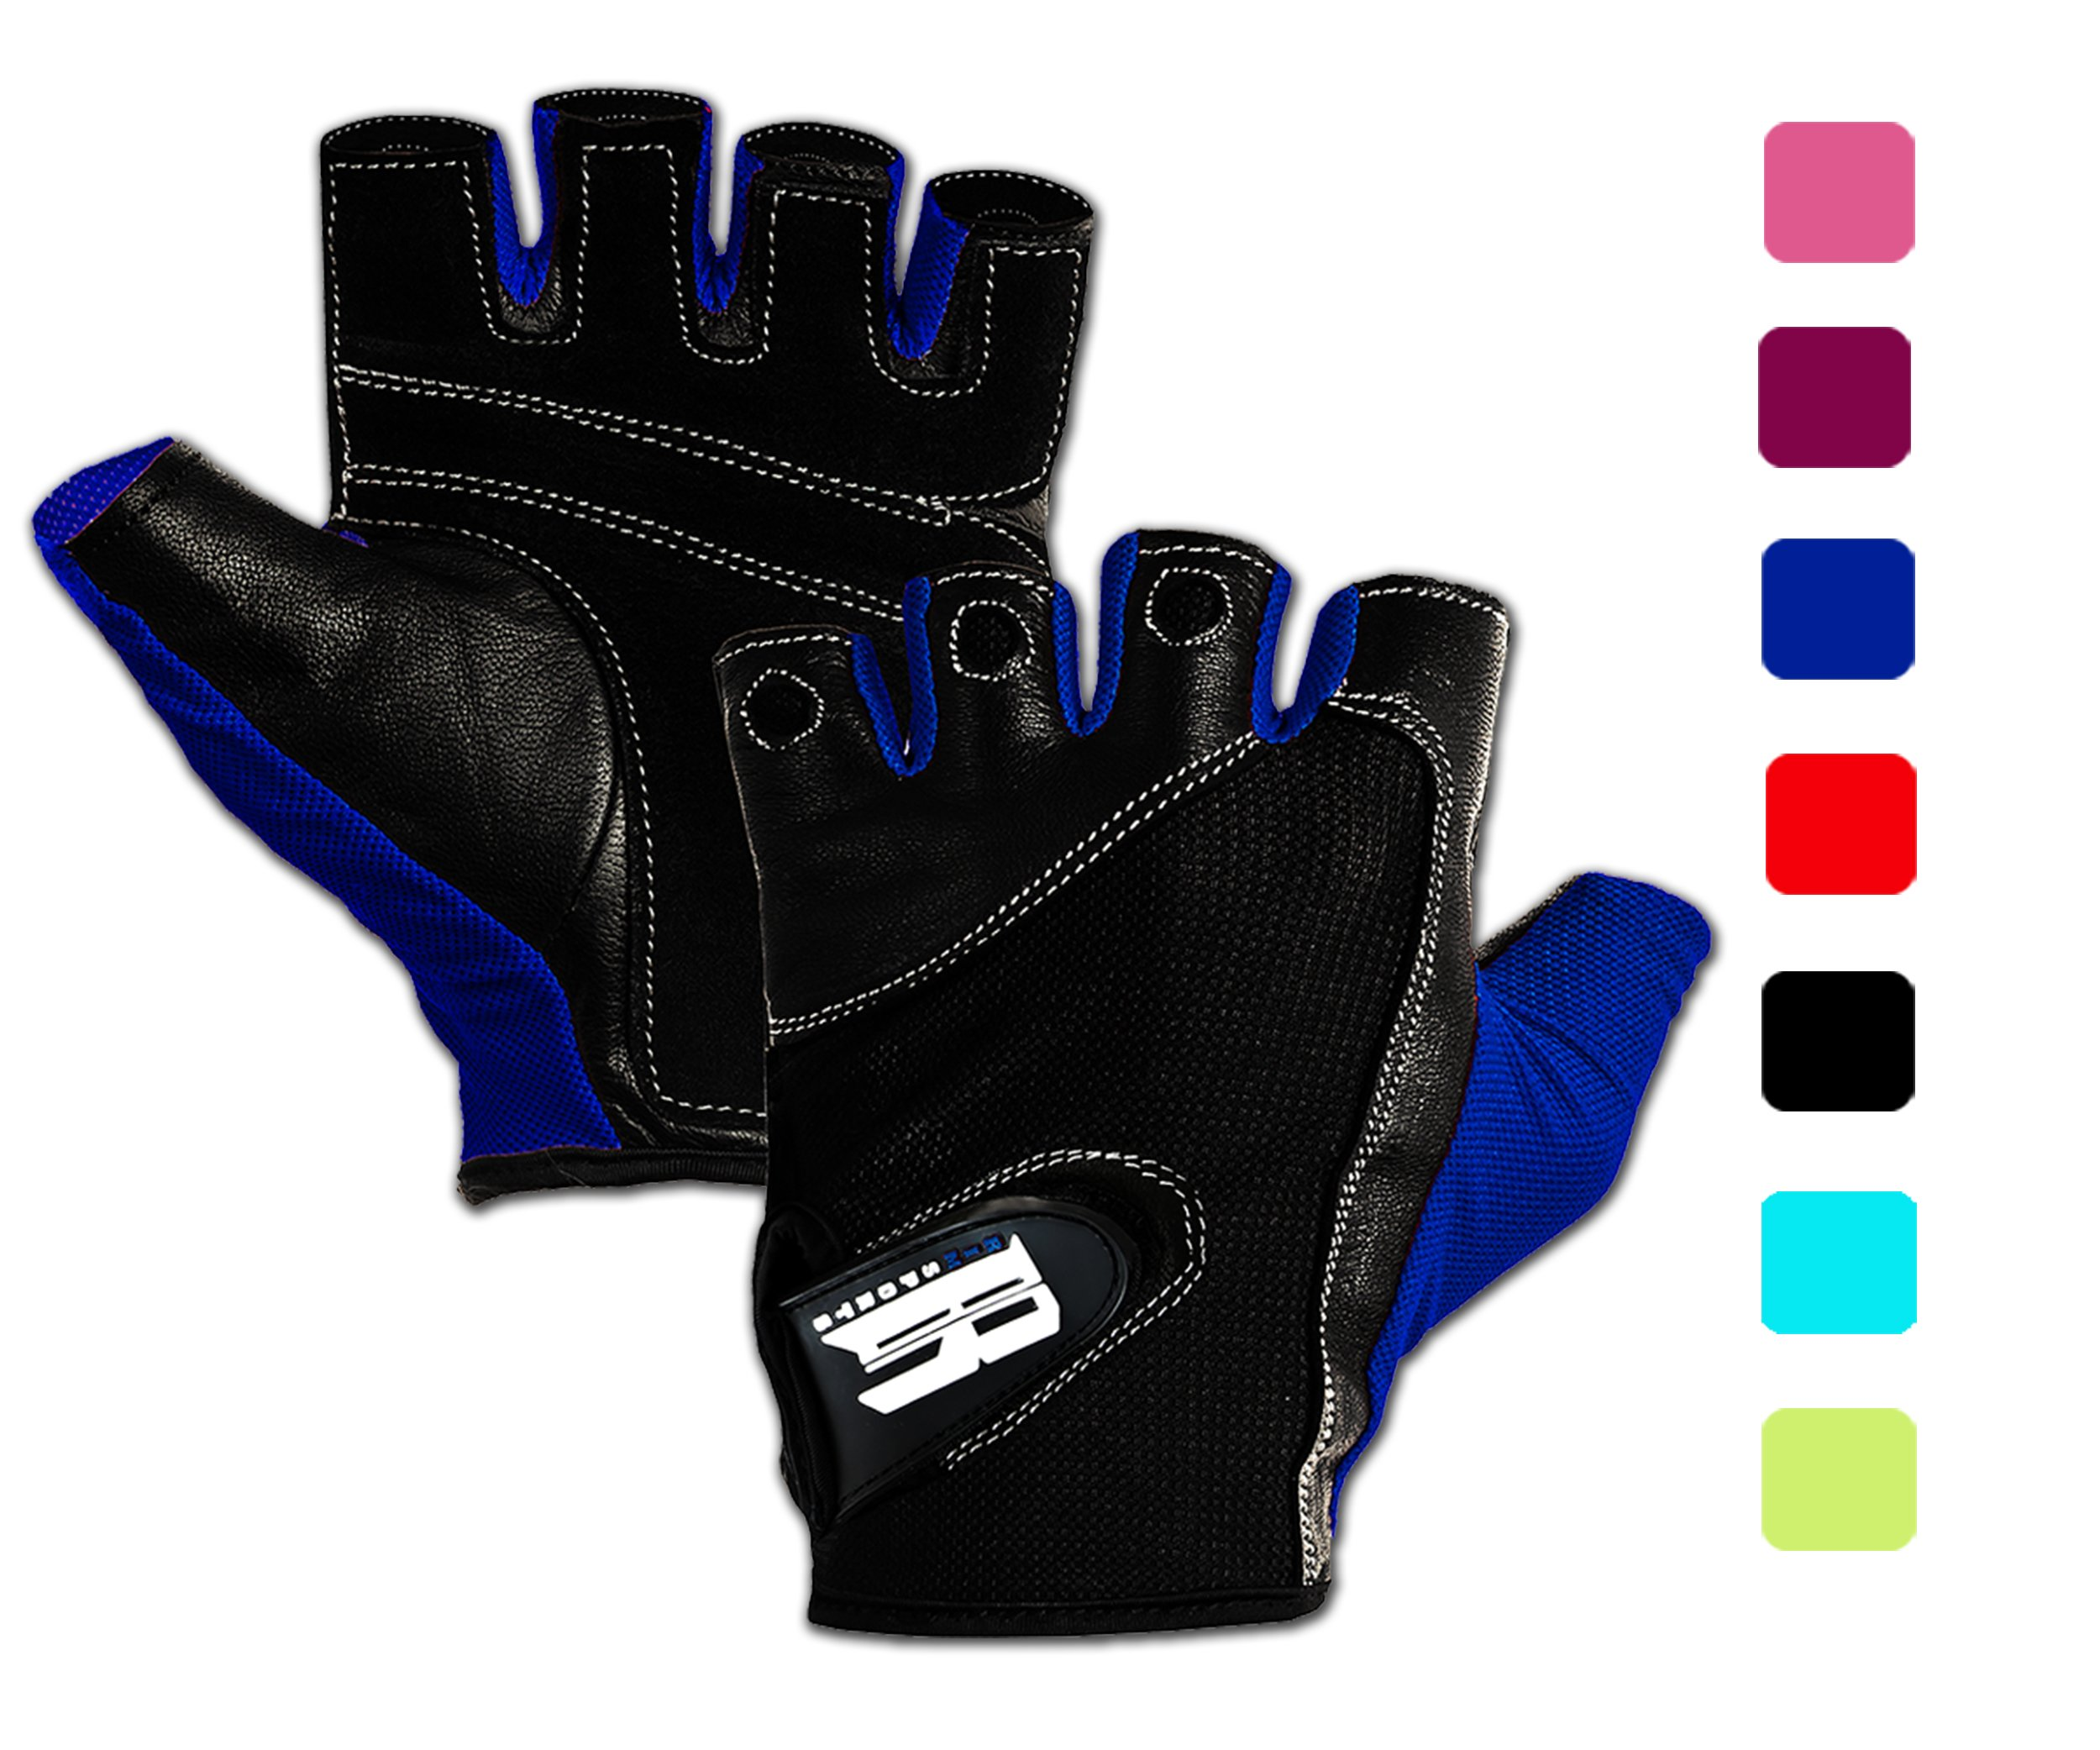 RIMSports Weight Lifting Gloves for Gym - Gym Gloves w/Washable Ideal Rowing Gloves, Workout Gloves, Premium Gloves for Core Fitness Dumbbells & Flexibility Machine (Blue XS)